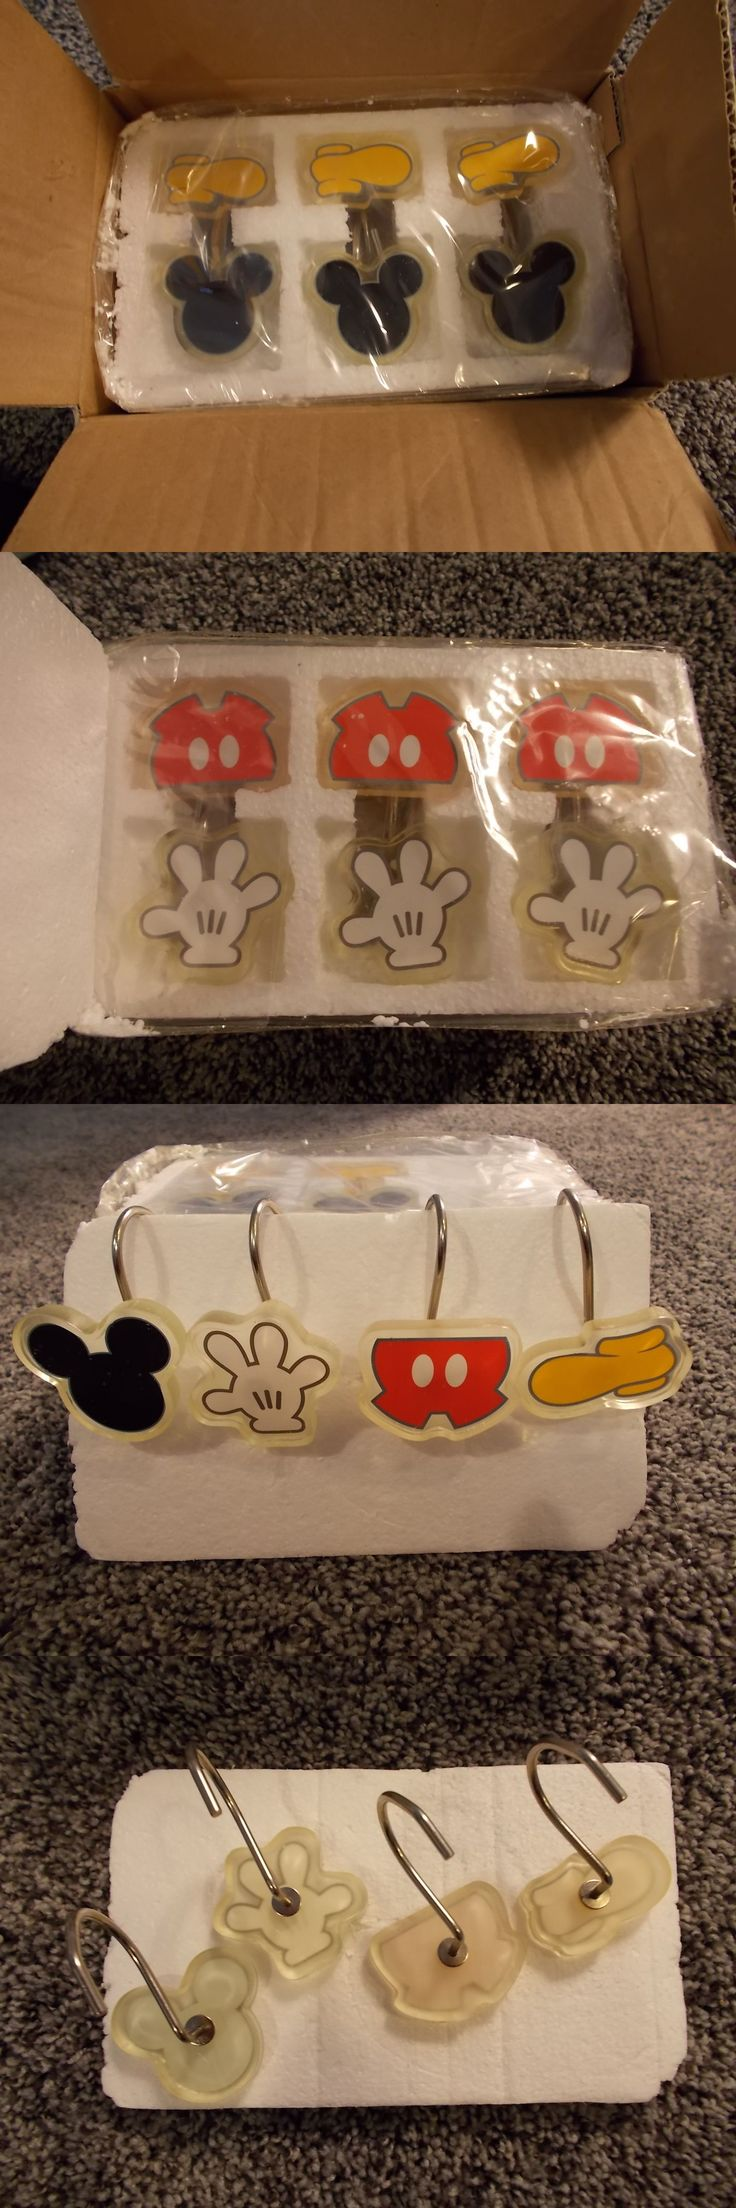 Shower Curtain Hooks 32874: Rare Disney Mickey Mouse Body Parts Shower Curtain Hooks Set Of 12 New In Box -> BUY IT NOW ONLY: $90 on eBay!